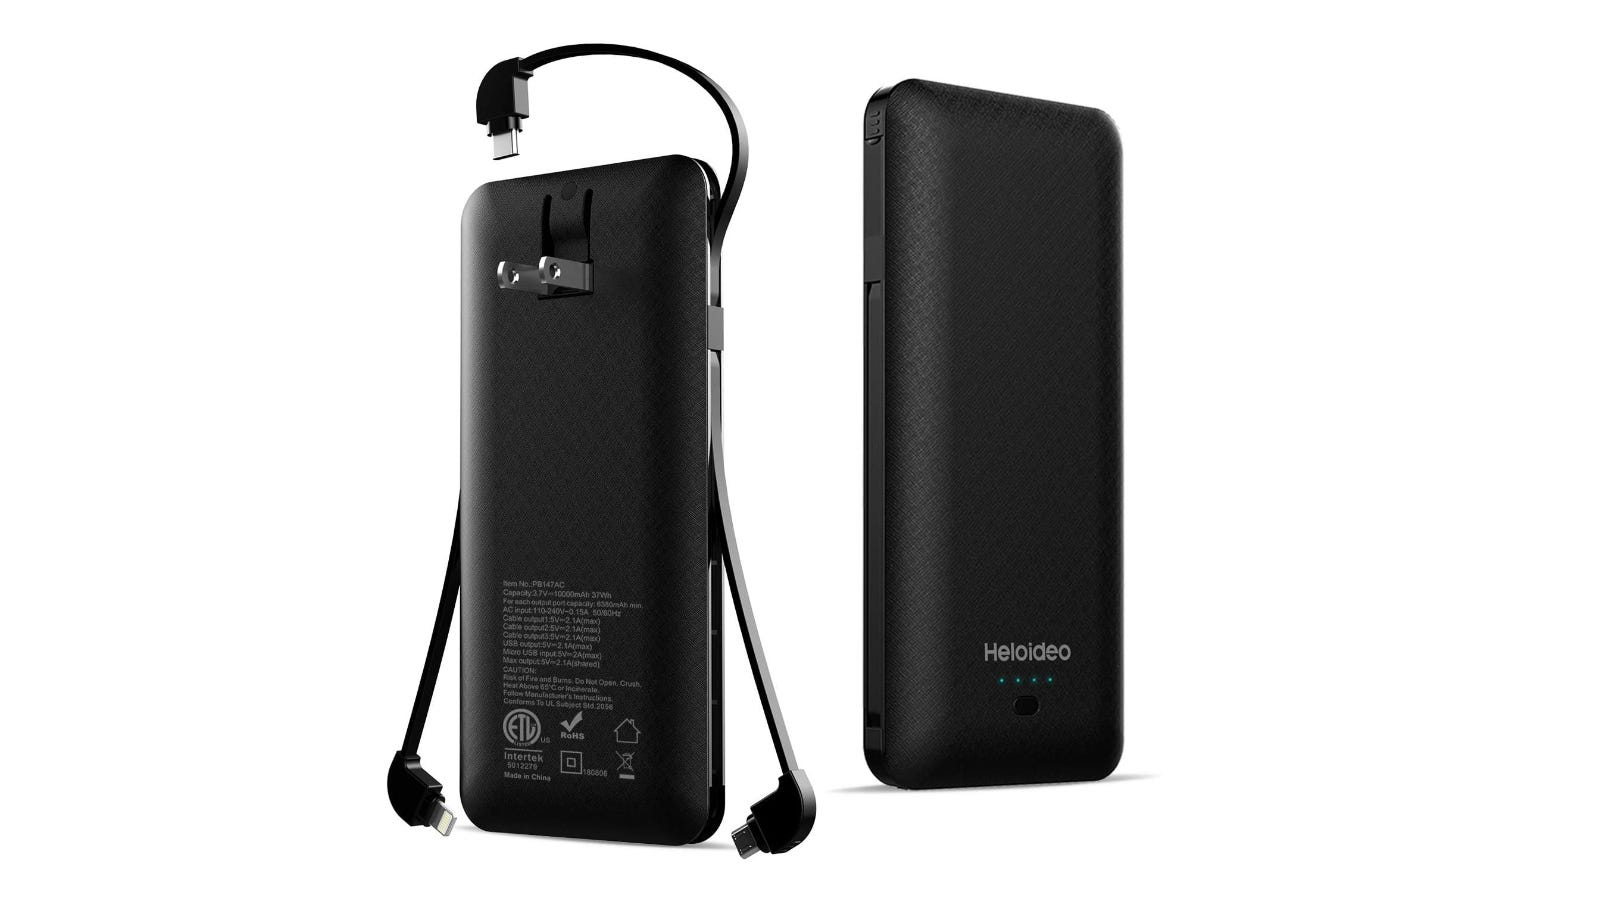 Heloideo 10000 mAh Slim Charger